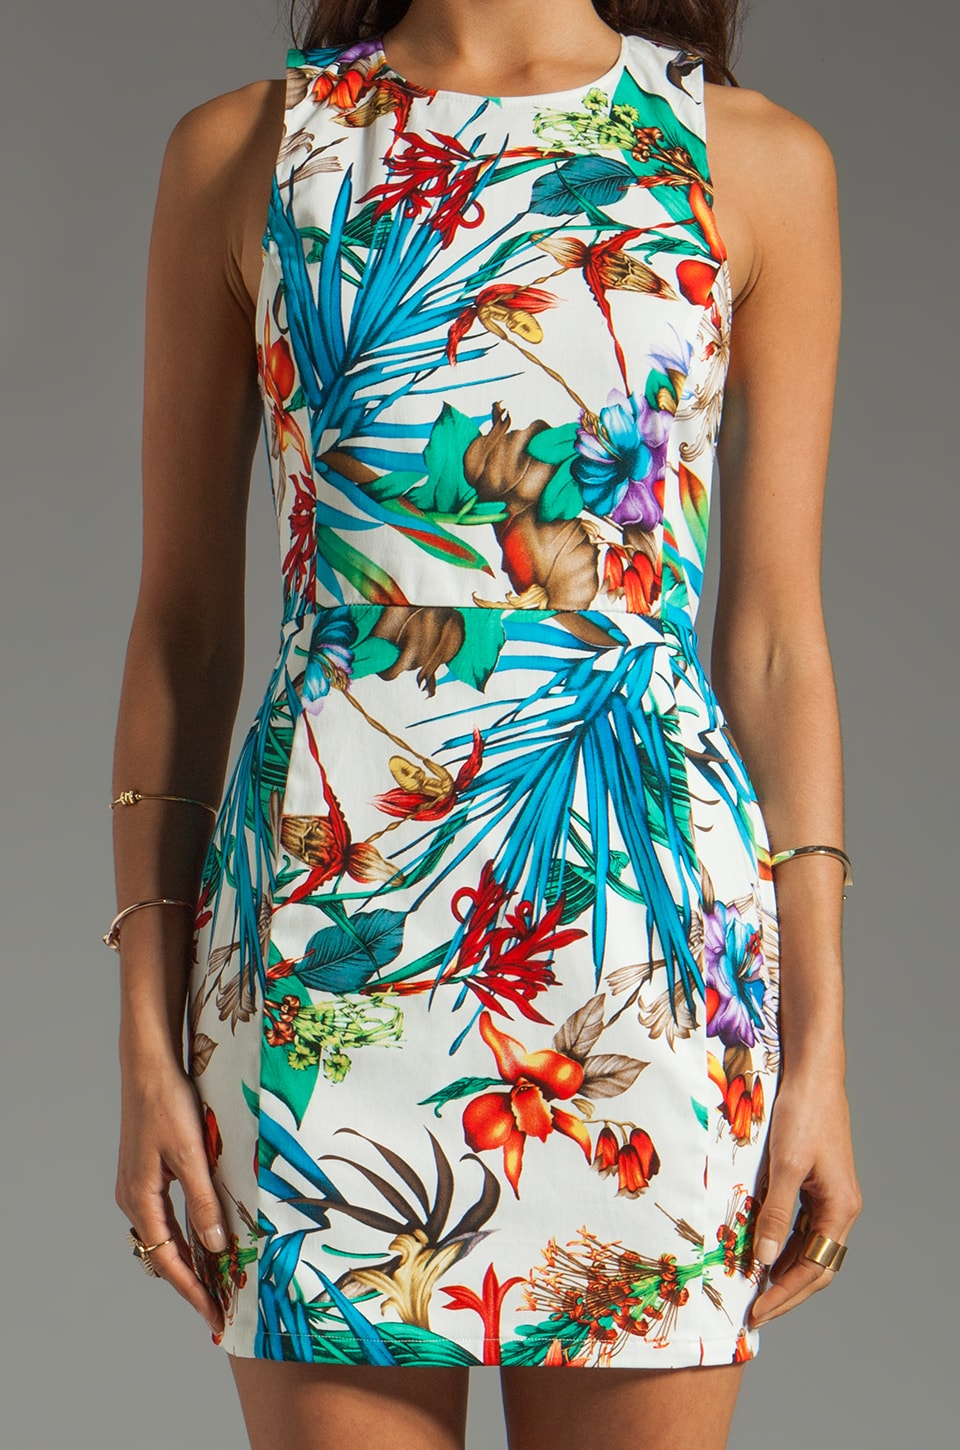 Backstage EXCLUSIVE Dana Tropical Dress in White